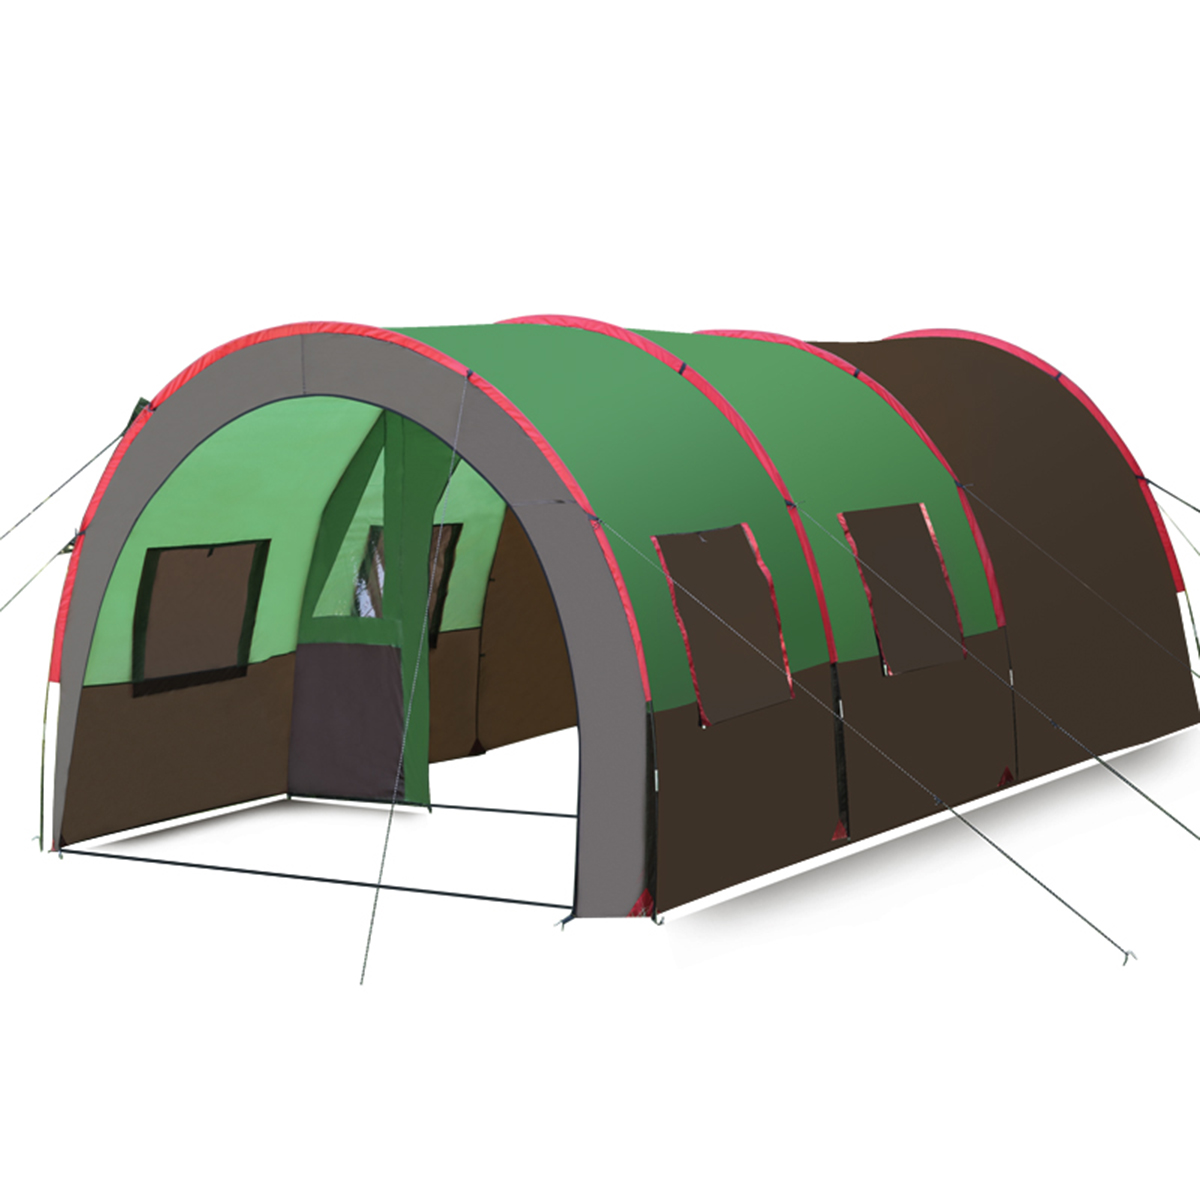 Outdoor Tents 8-10 Person One Room Two Hall Large Camping Waterproof Family Tent Fully Sun Shelter Gazebo Party Camping Hiking trackman 5 8 person outdoor camping tent one room one hall family tent gazebo awnin beach tent sun shelter family tent